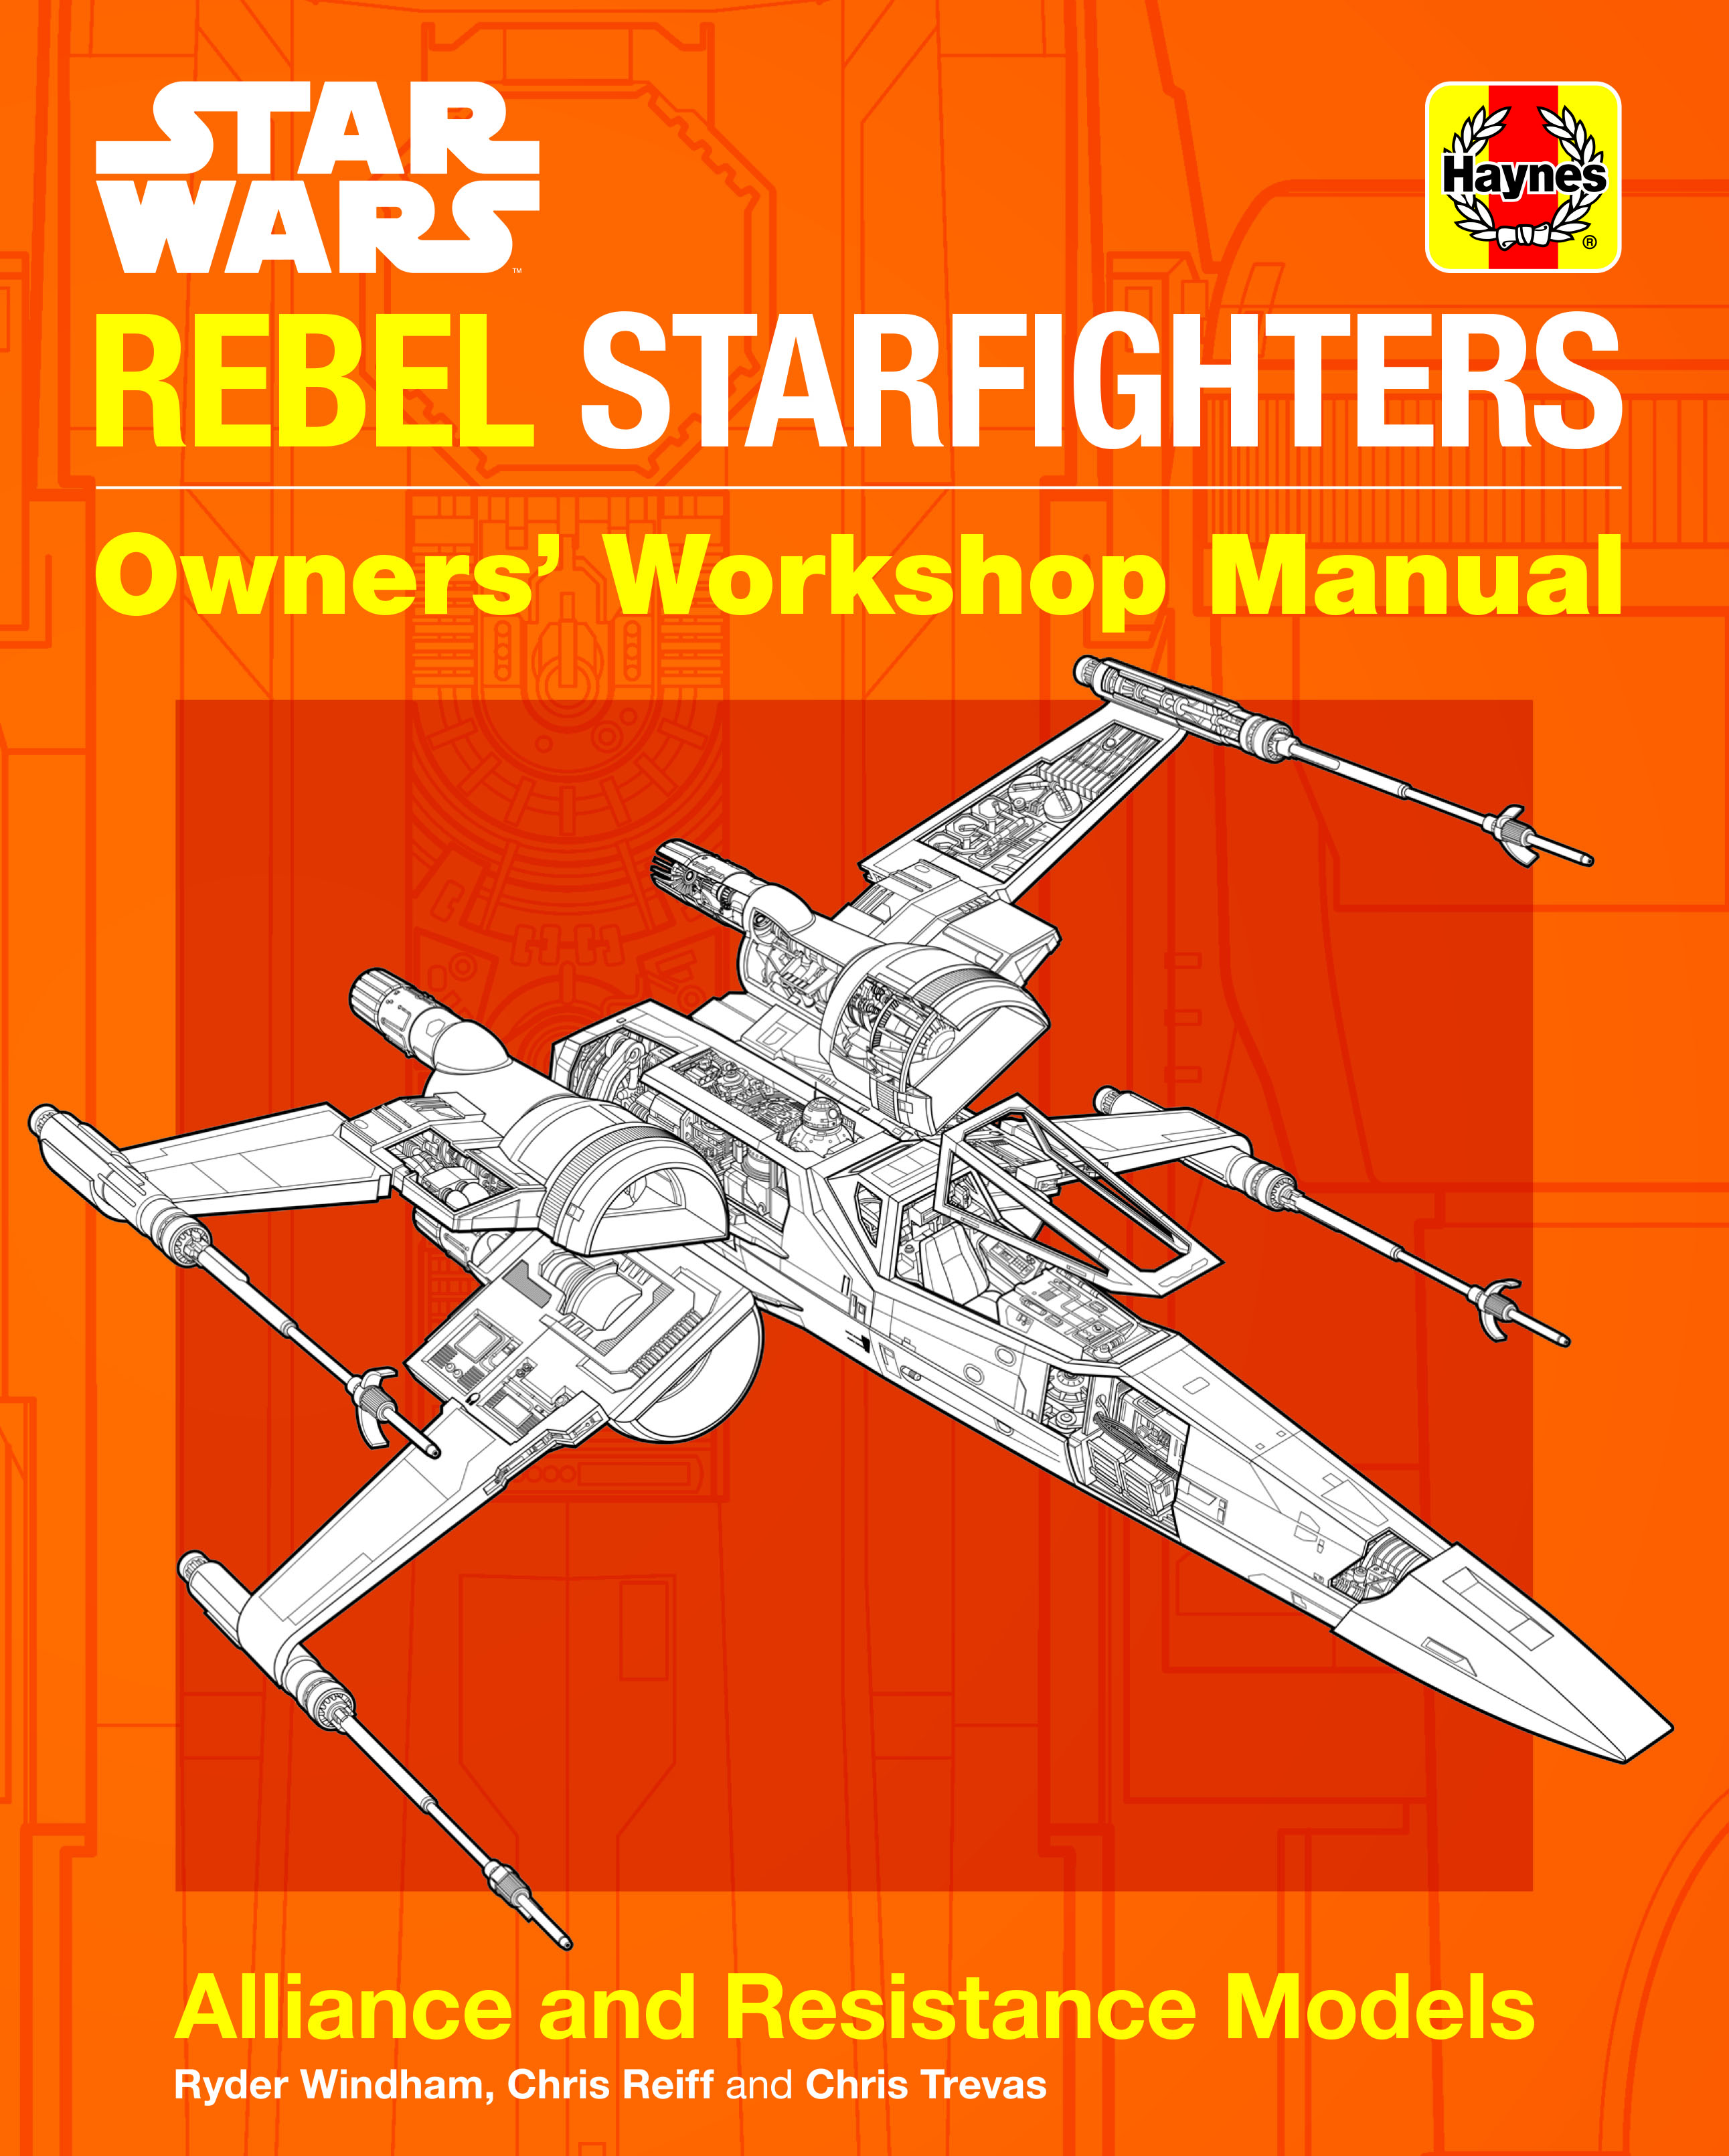 Book Review | Haynes Star Wars ReBook Review | Haynes Star Wars Rebel Starfighters Owner's Workshop Manualbel Starfighters Owner's Workshop Manual